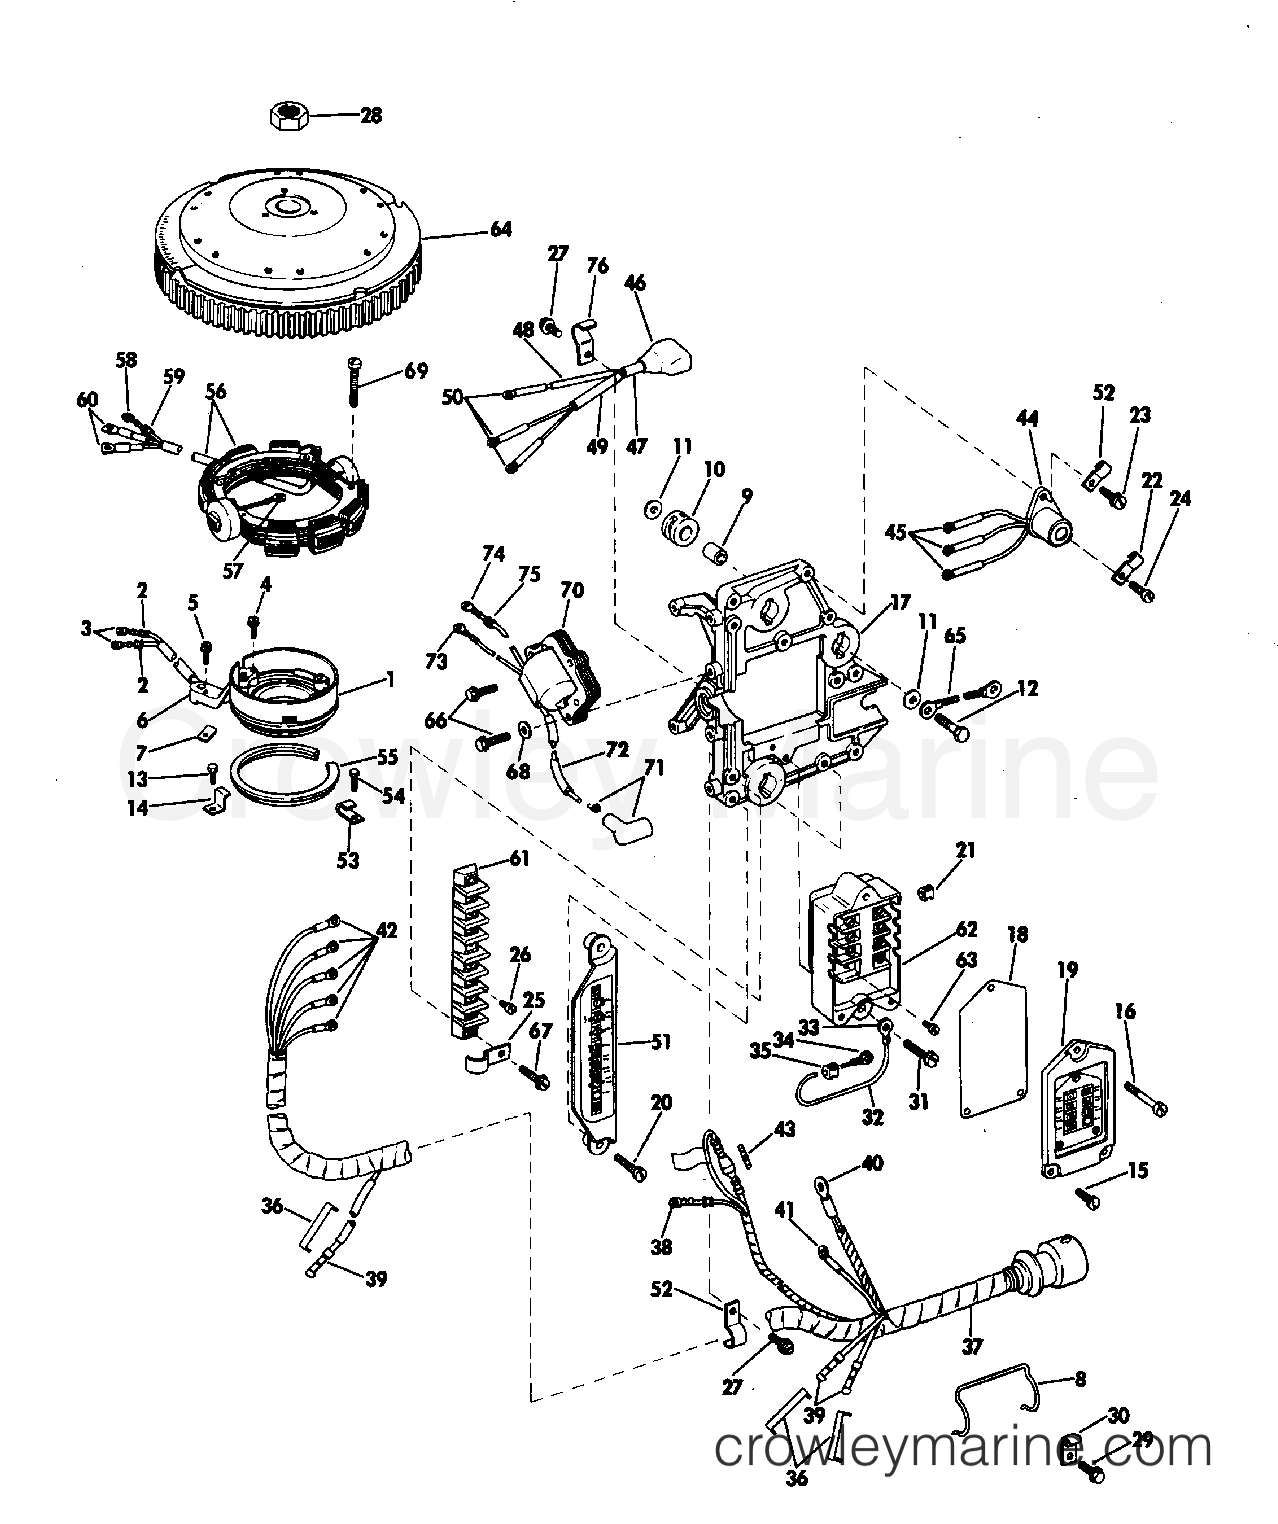 1971 Yamaha Engine Diagram Auto Electrical Wiring Related With